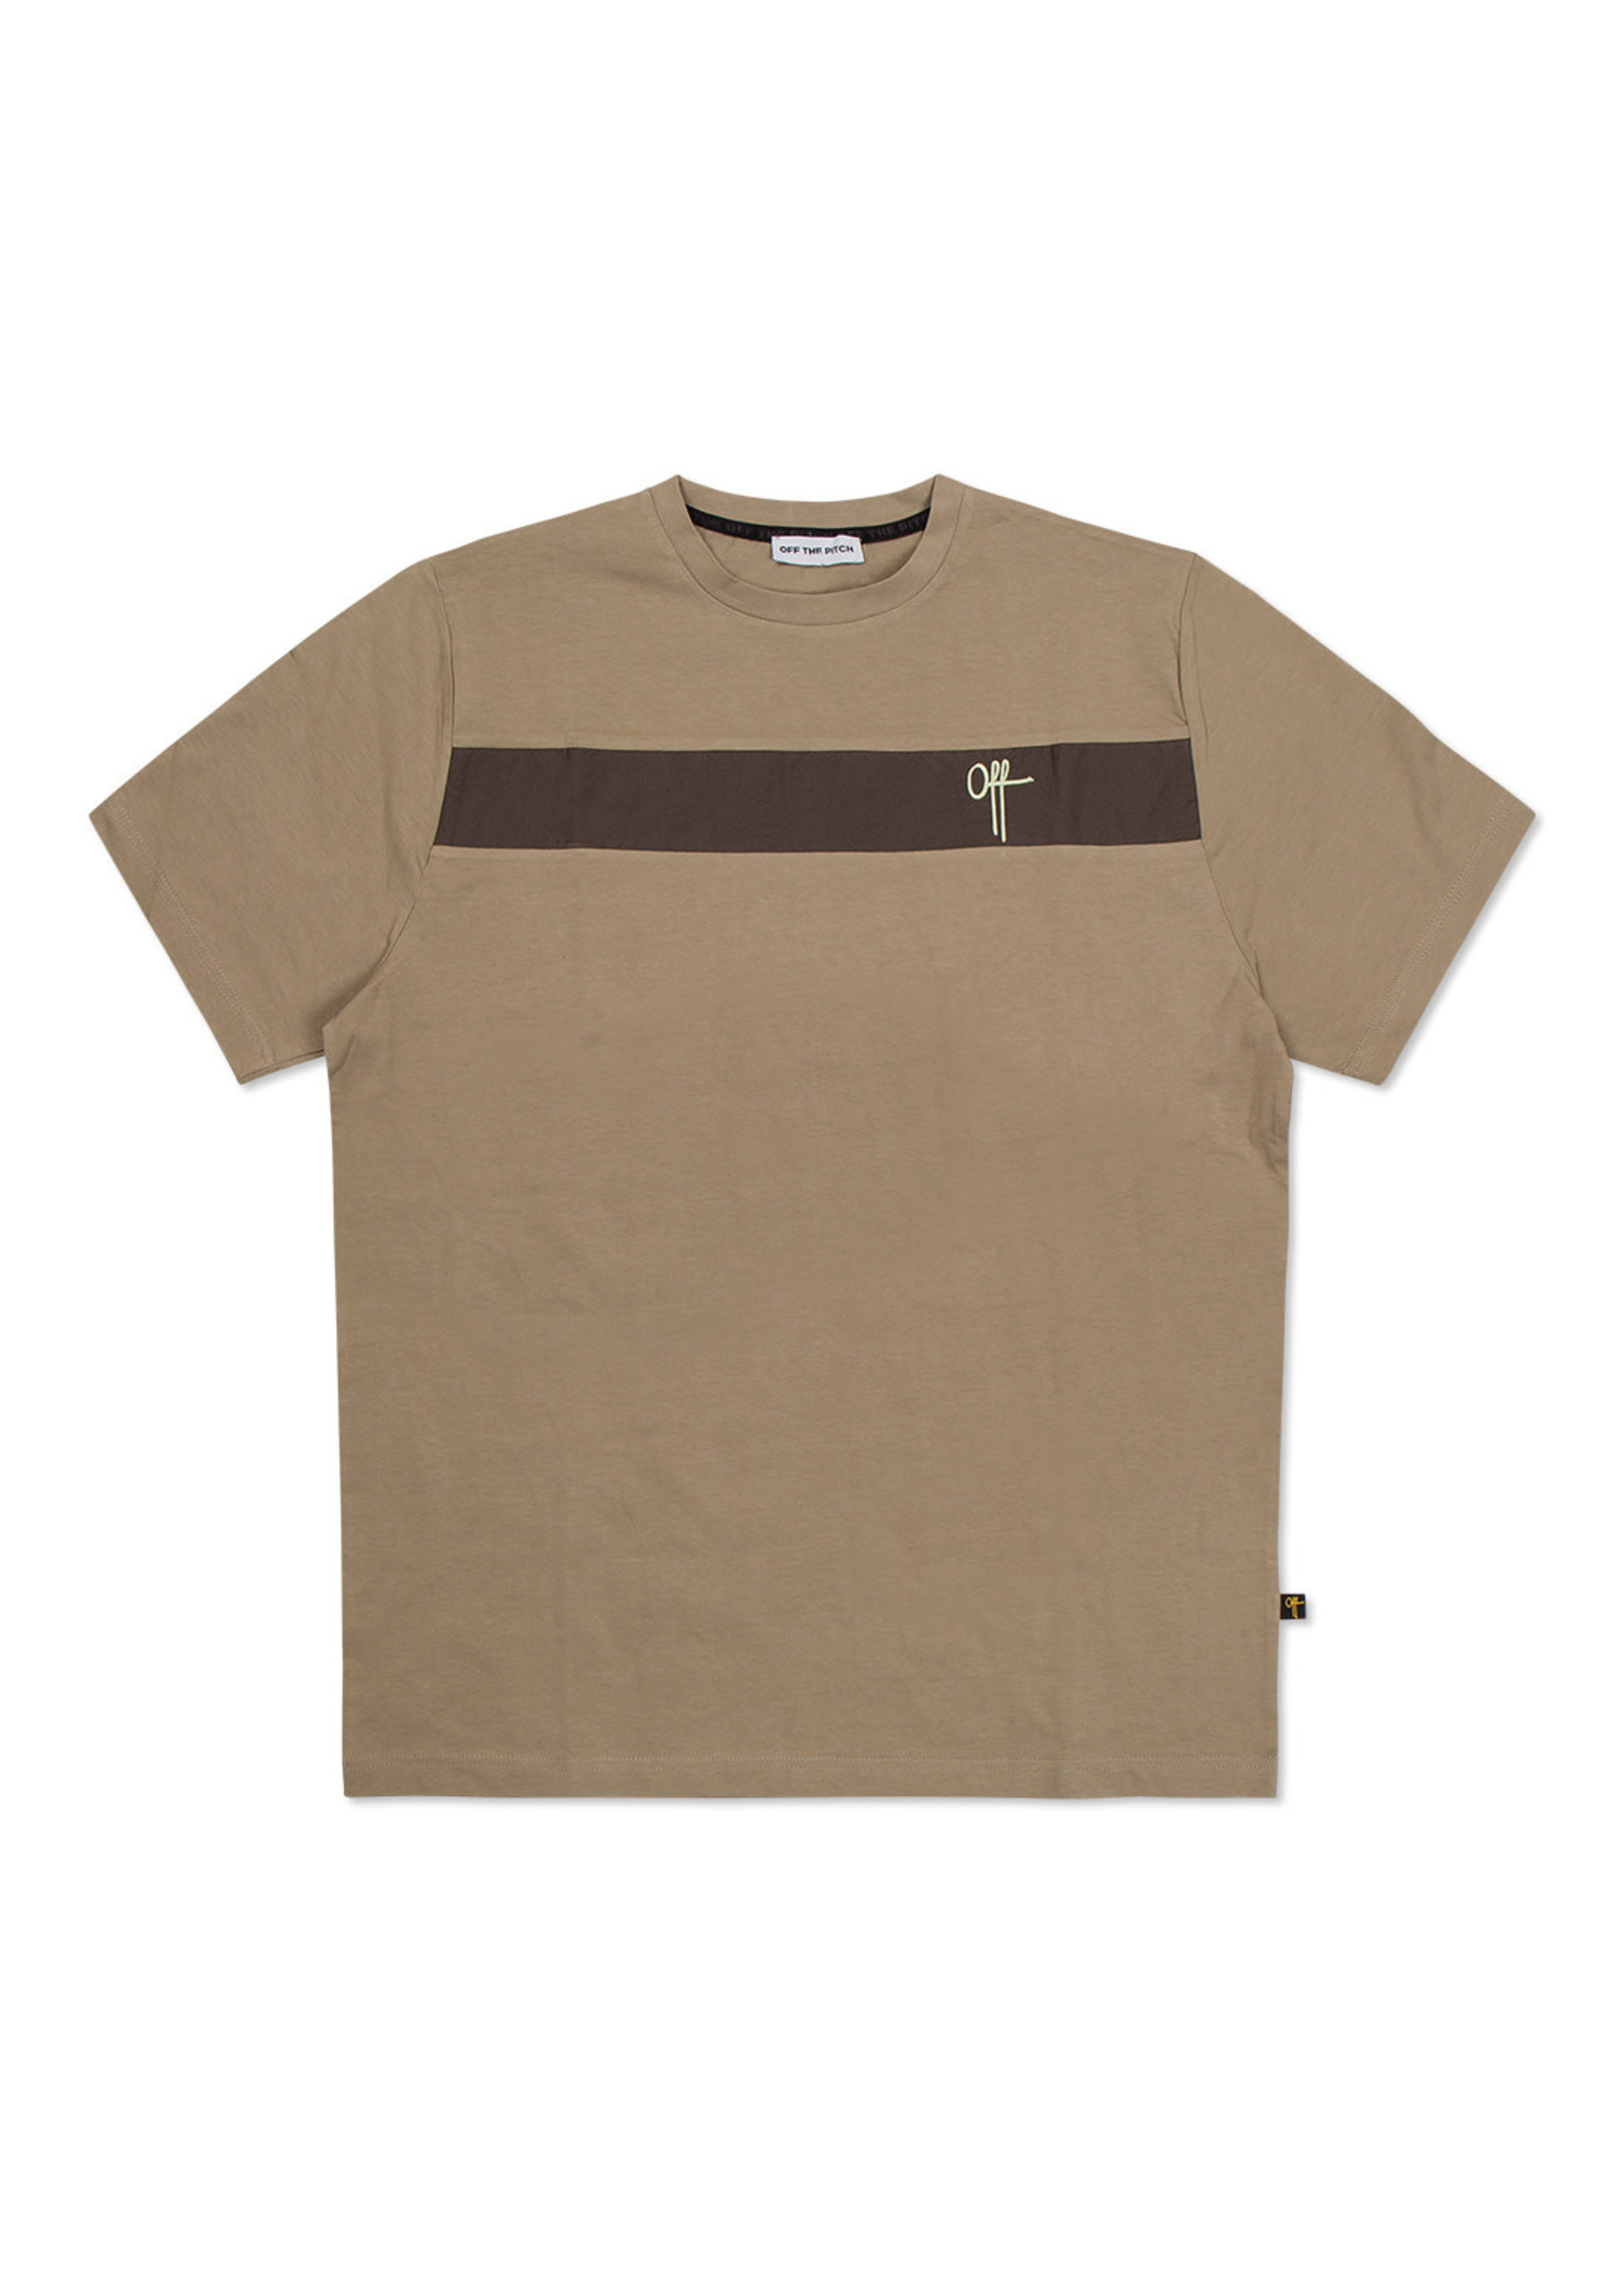 OFF THE PITCH The Comet Tee - Green